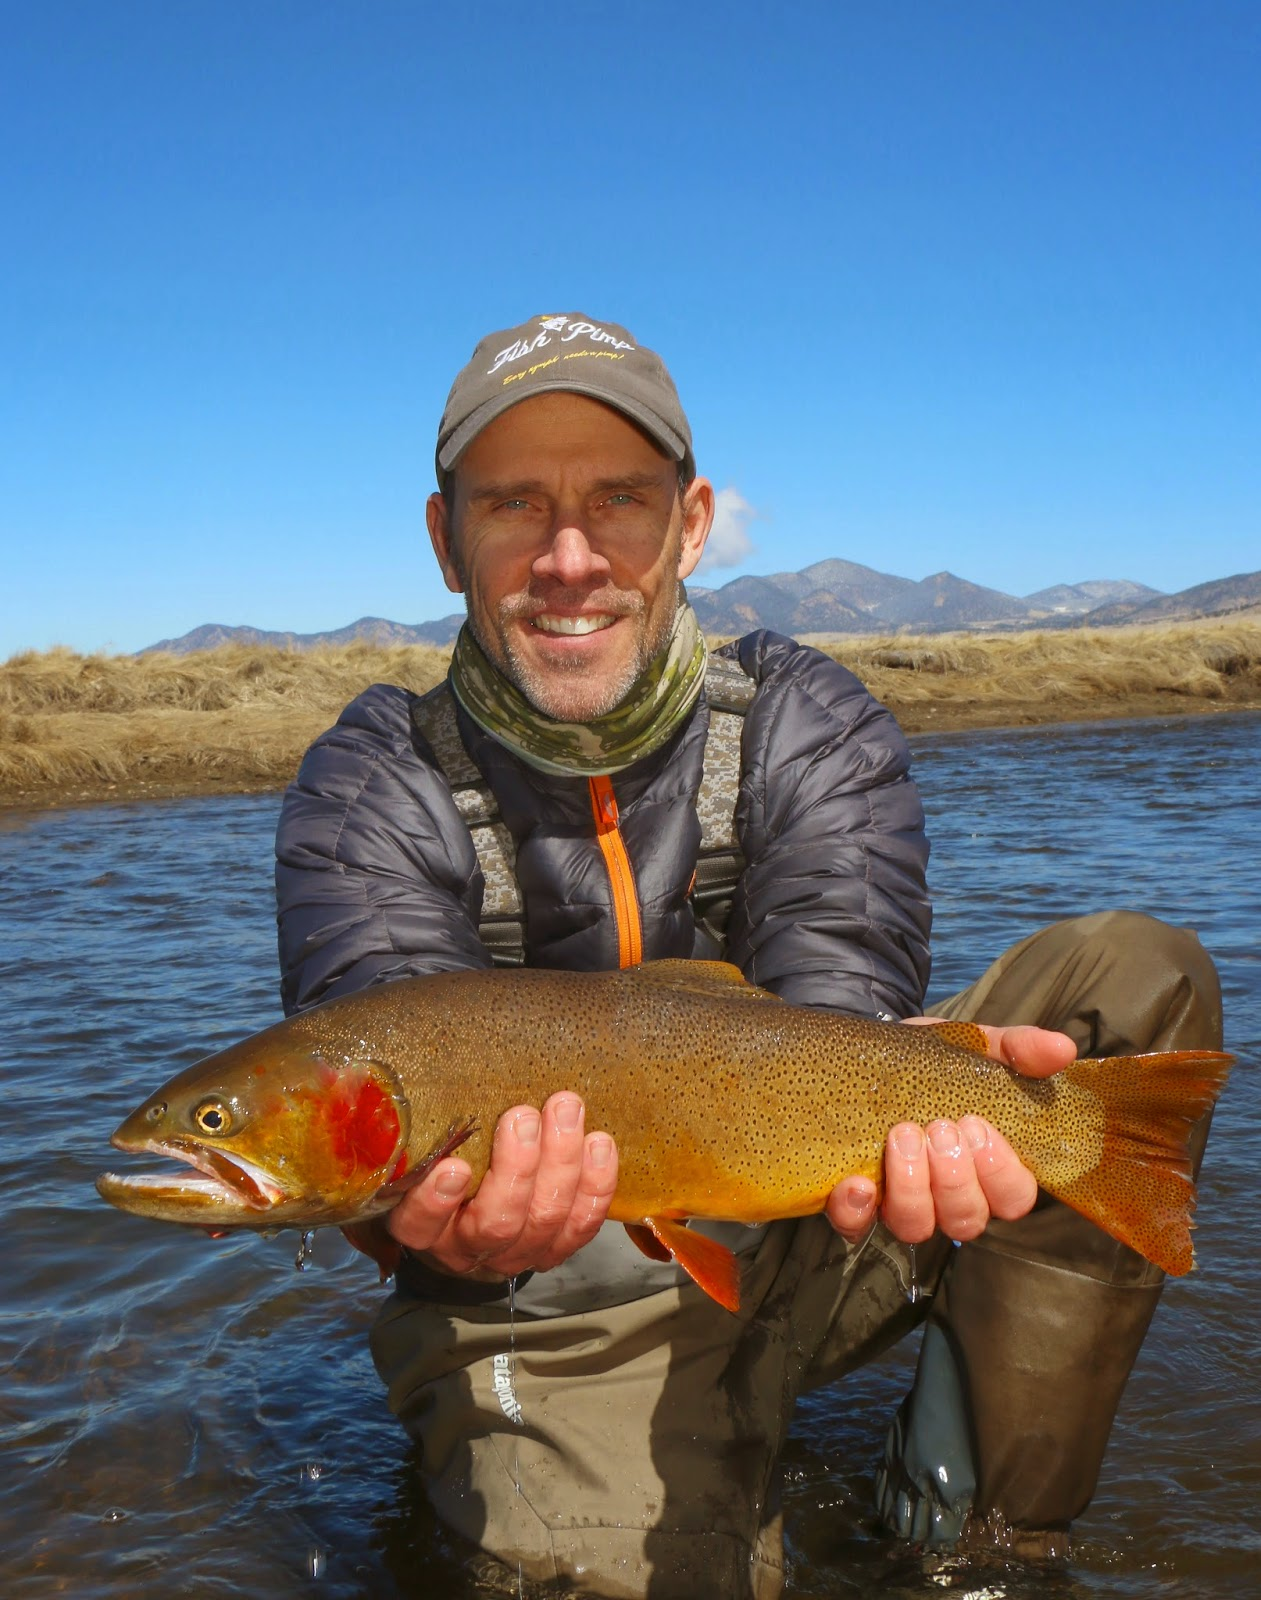 Jamie 39 s fly fishing journal back to landon school on the for Fly fishing journal